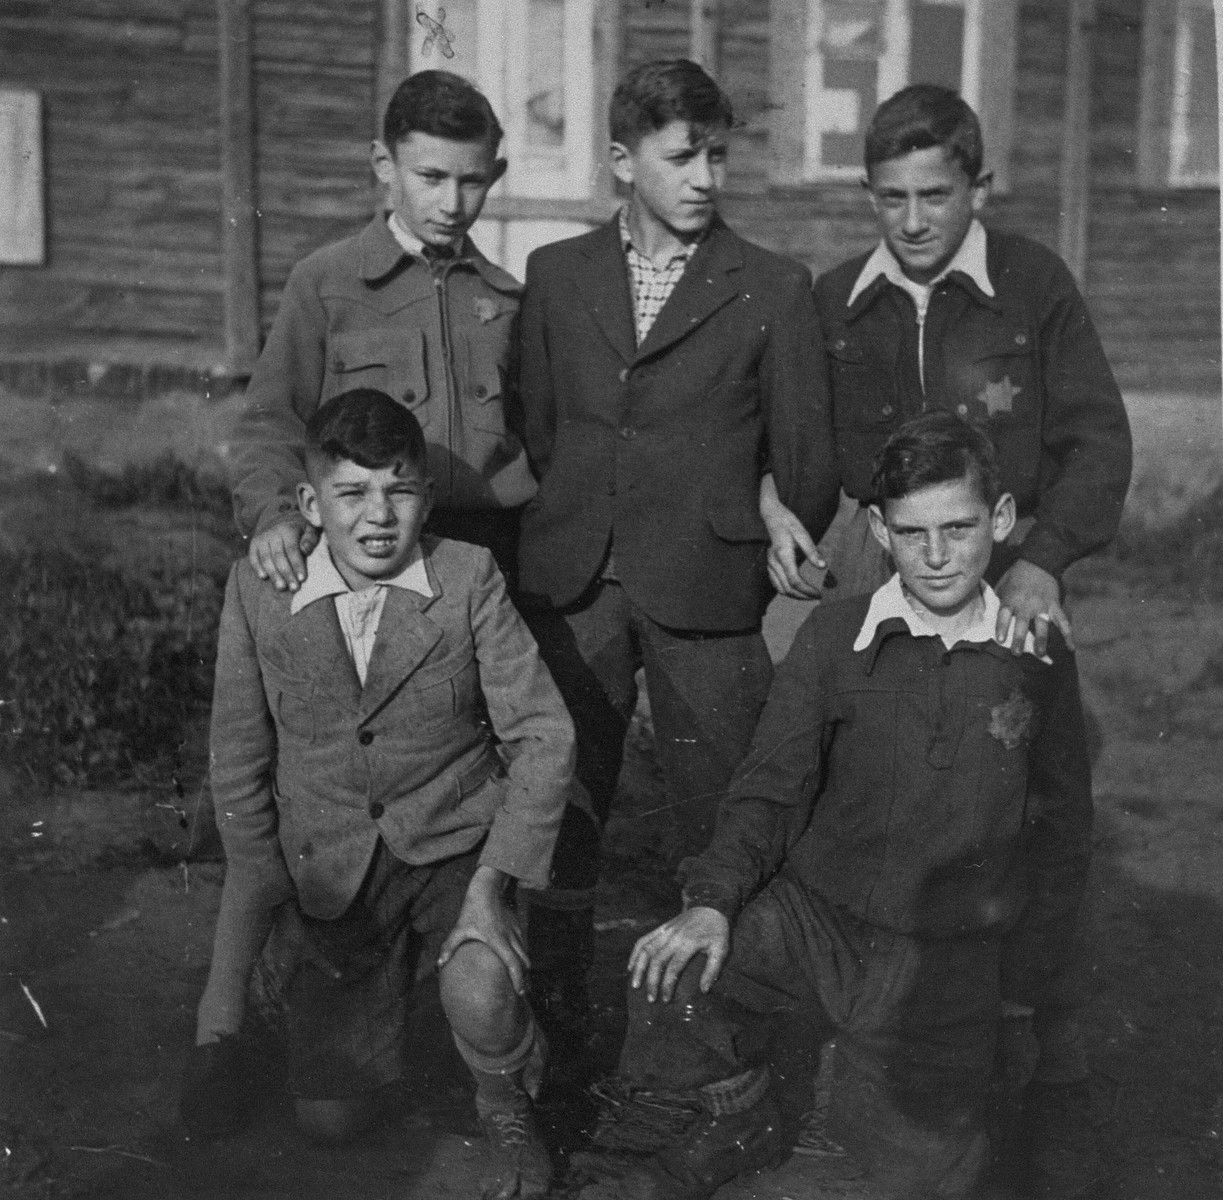 "Five youths in the Kovno ghetto.  The Yiddish inscription on the back reads: ""To the memory of five friends: I. Shapiro, Sh. Katz, R. Schwartzbard, L. Doneshewsky, I. Trozki/ Viljampolie [Slobodka] ghetto.""  Pictured on the left is Itzhak Zeev Trozki."